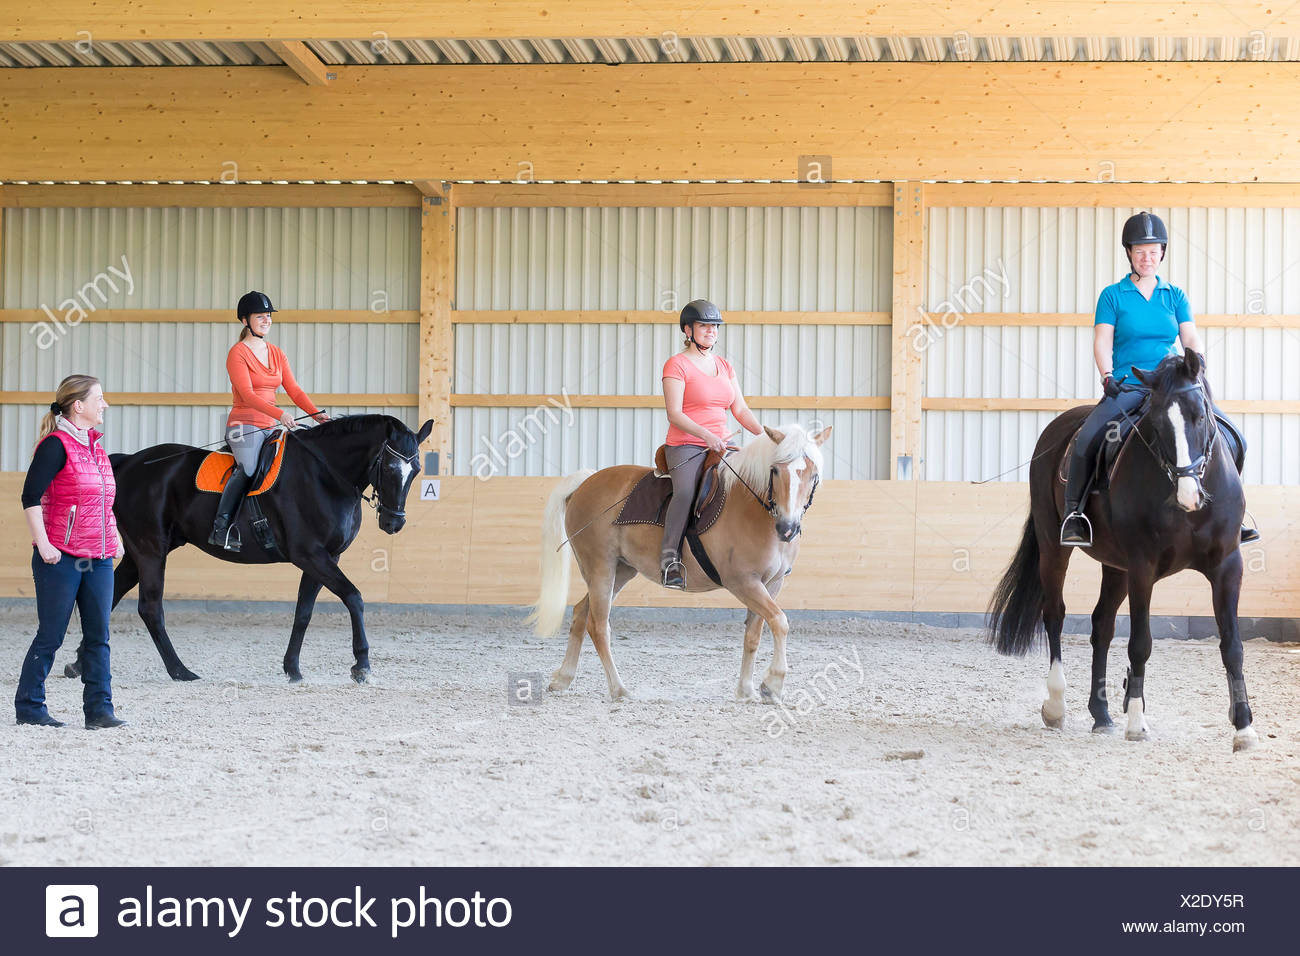 Riding lesson riding hall - Stock Image